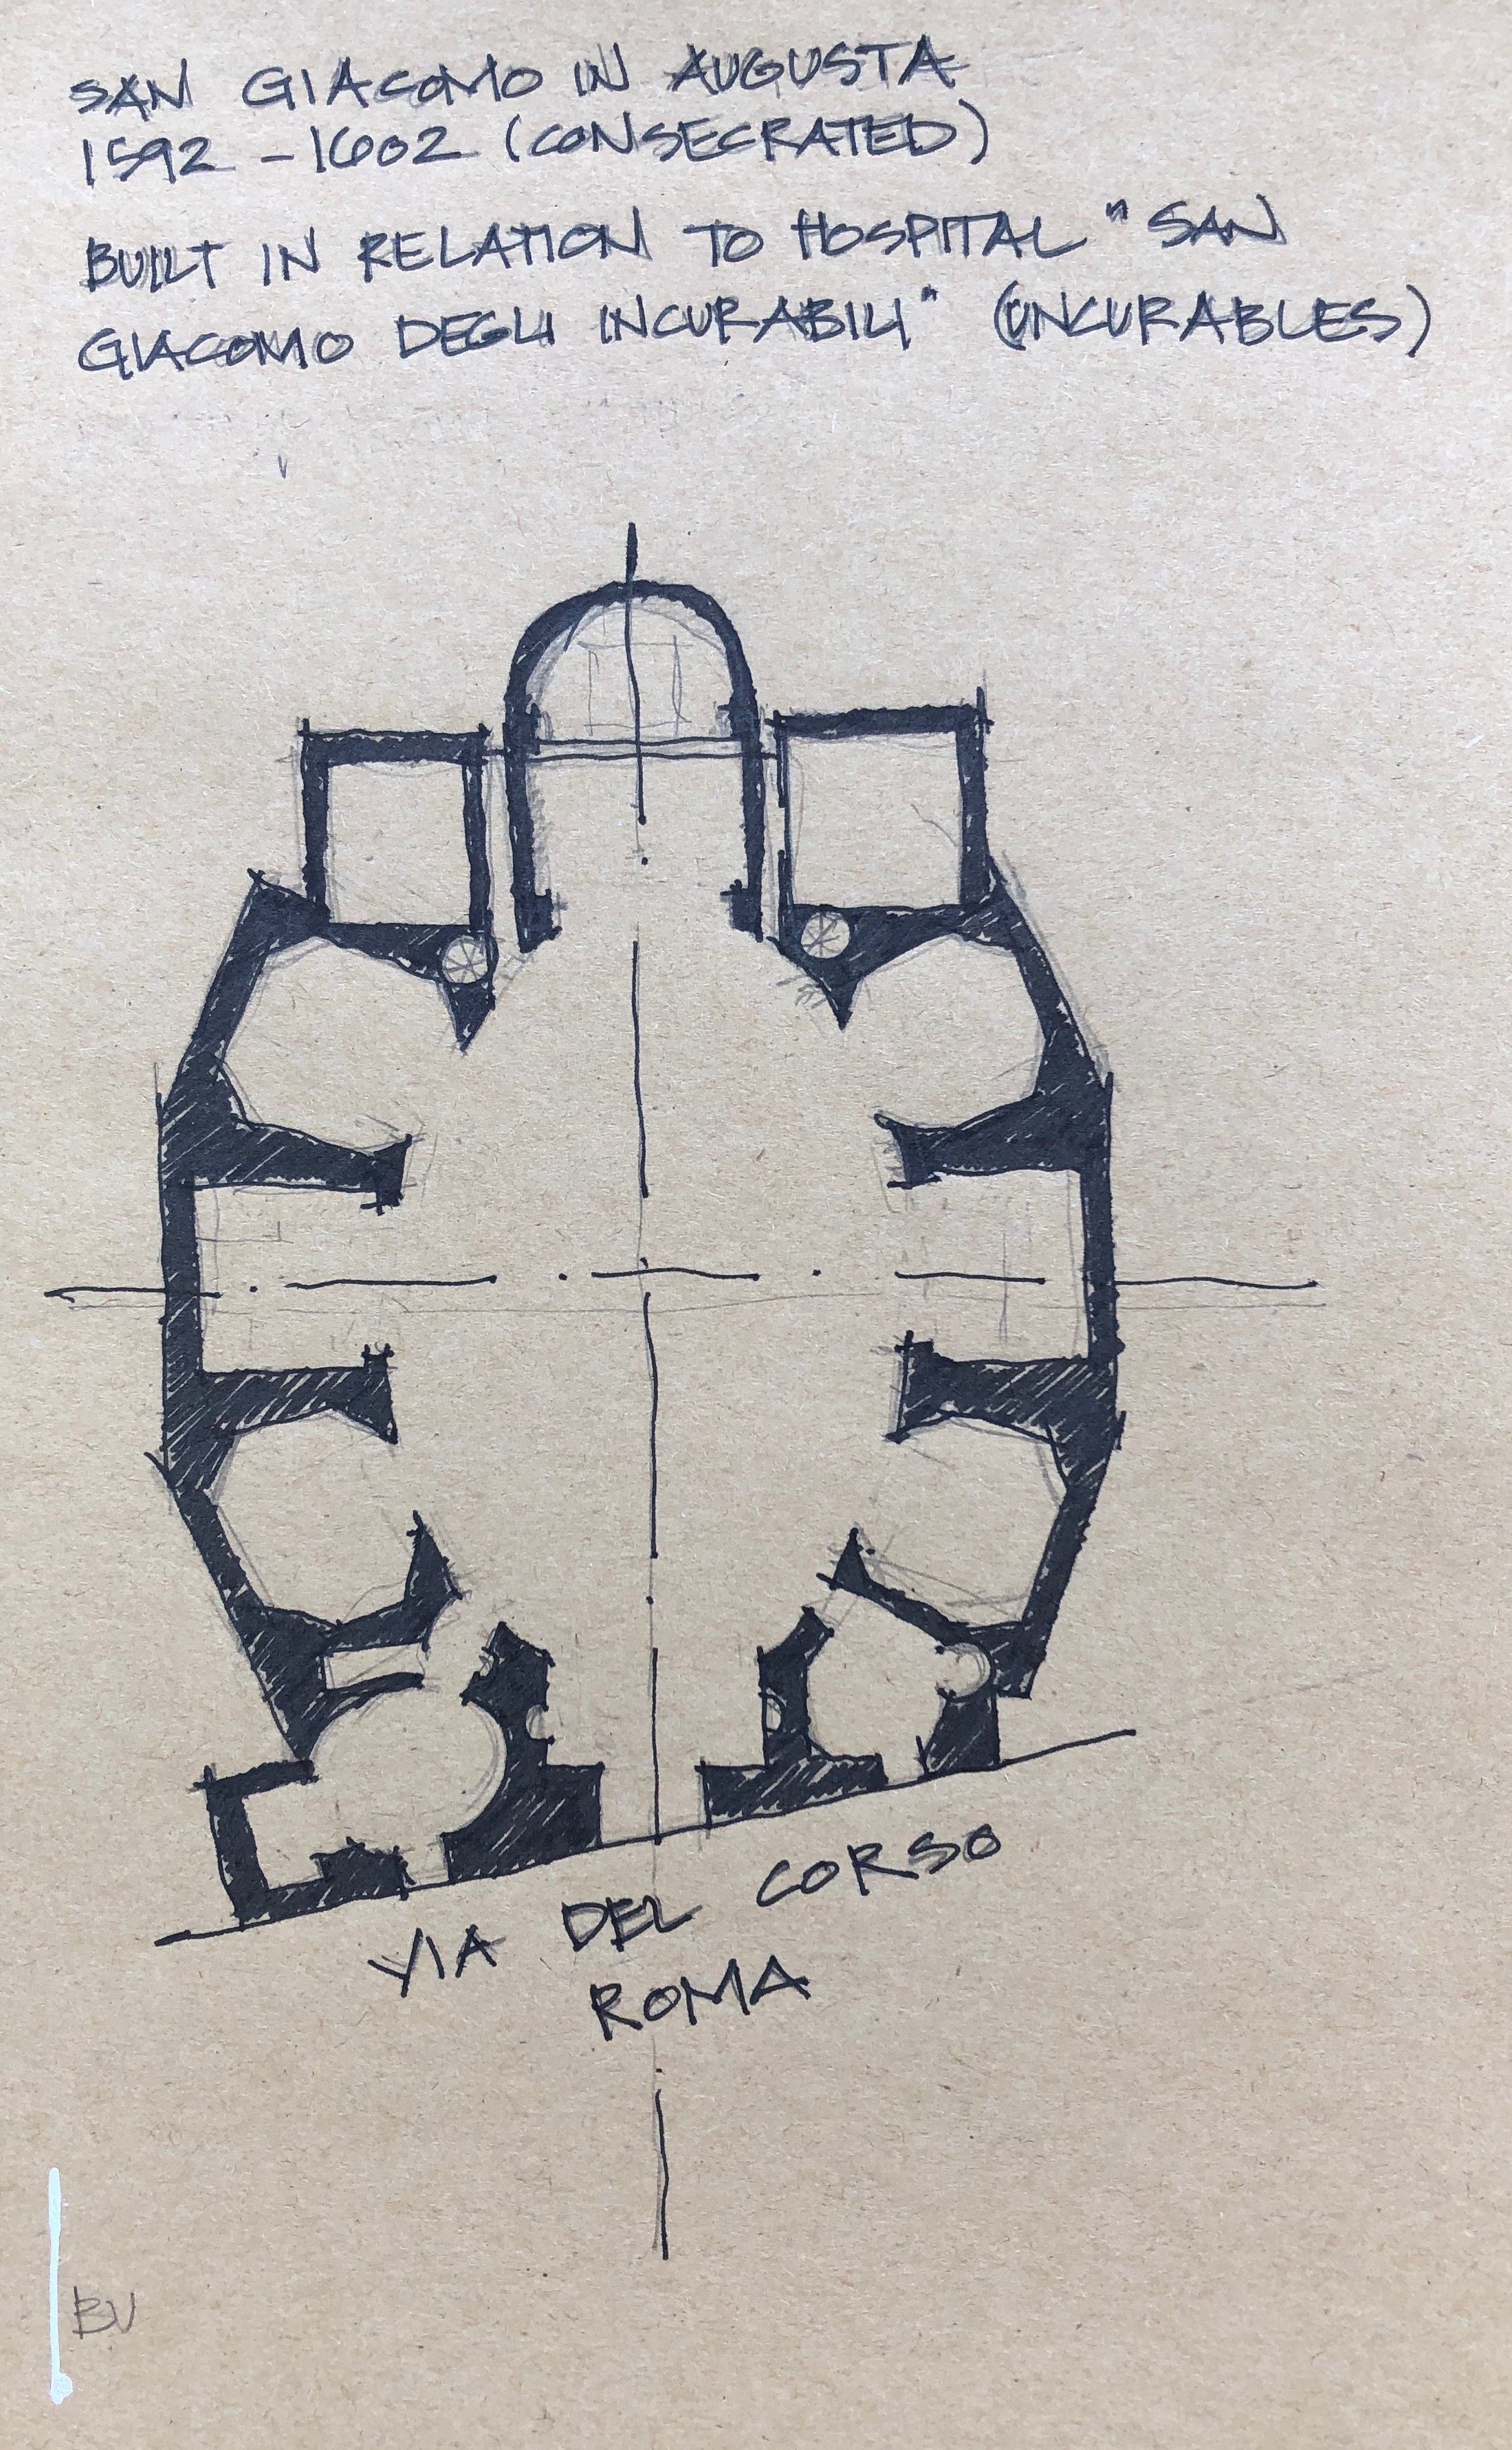 There is a church every turn you make in Rome. San Giacomo in Augusta was next to our hotel and after walking past it for days, we finally peeked in…speechless. Decided to draw the floor plan to convey the mass, construction and robustness.